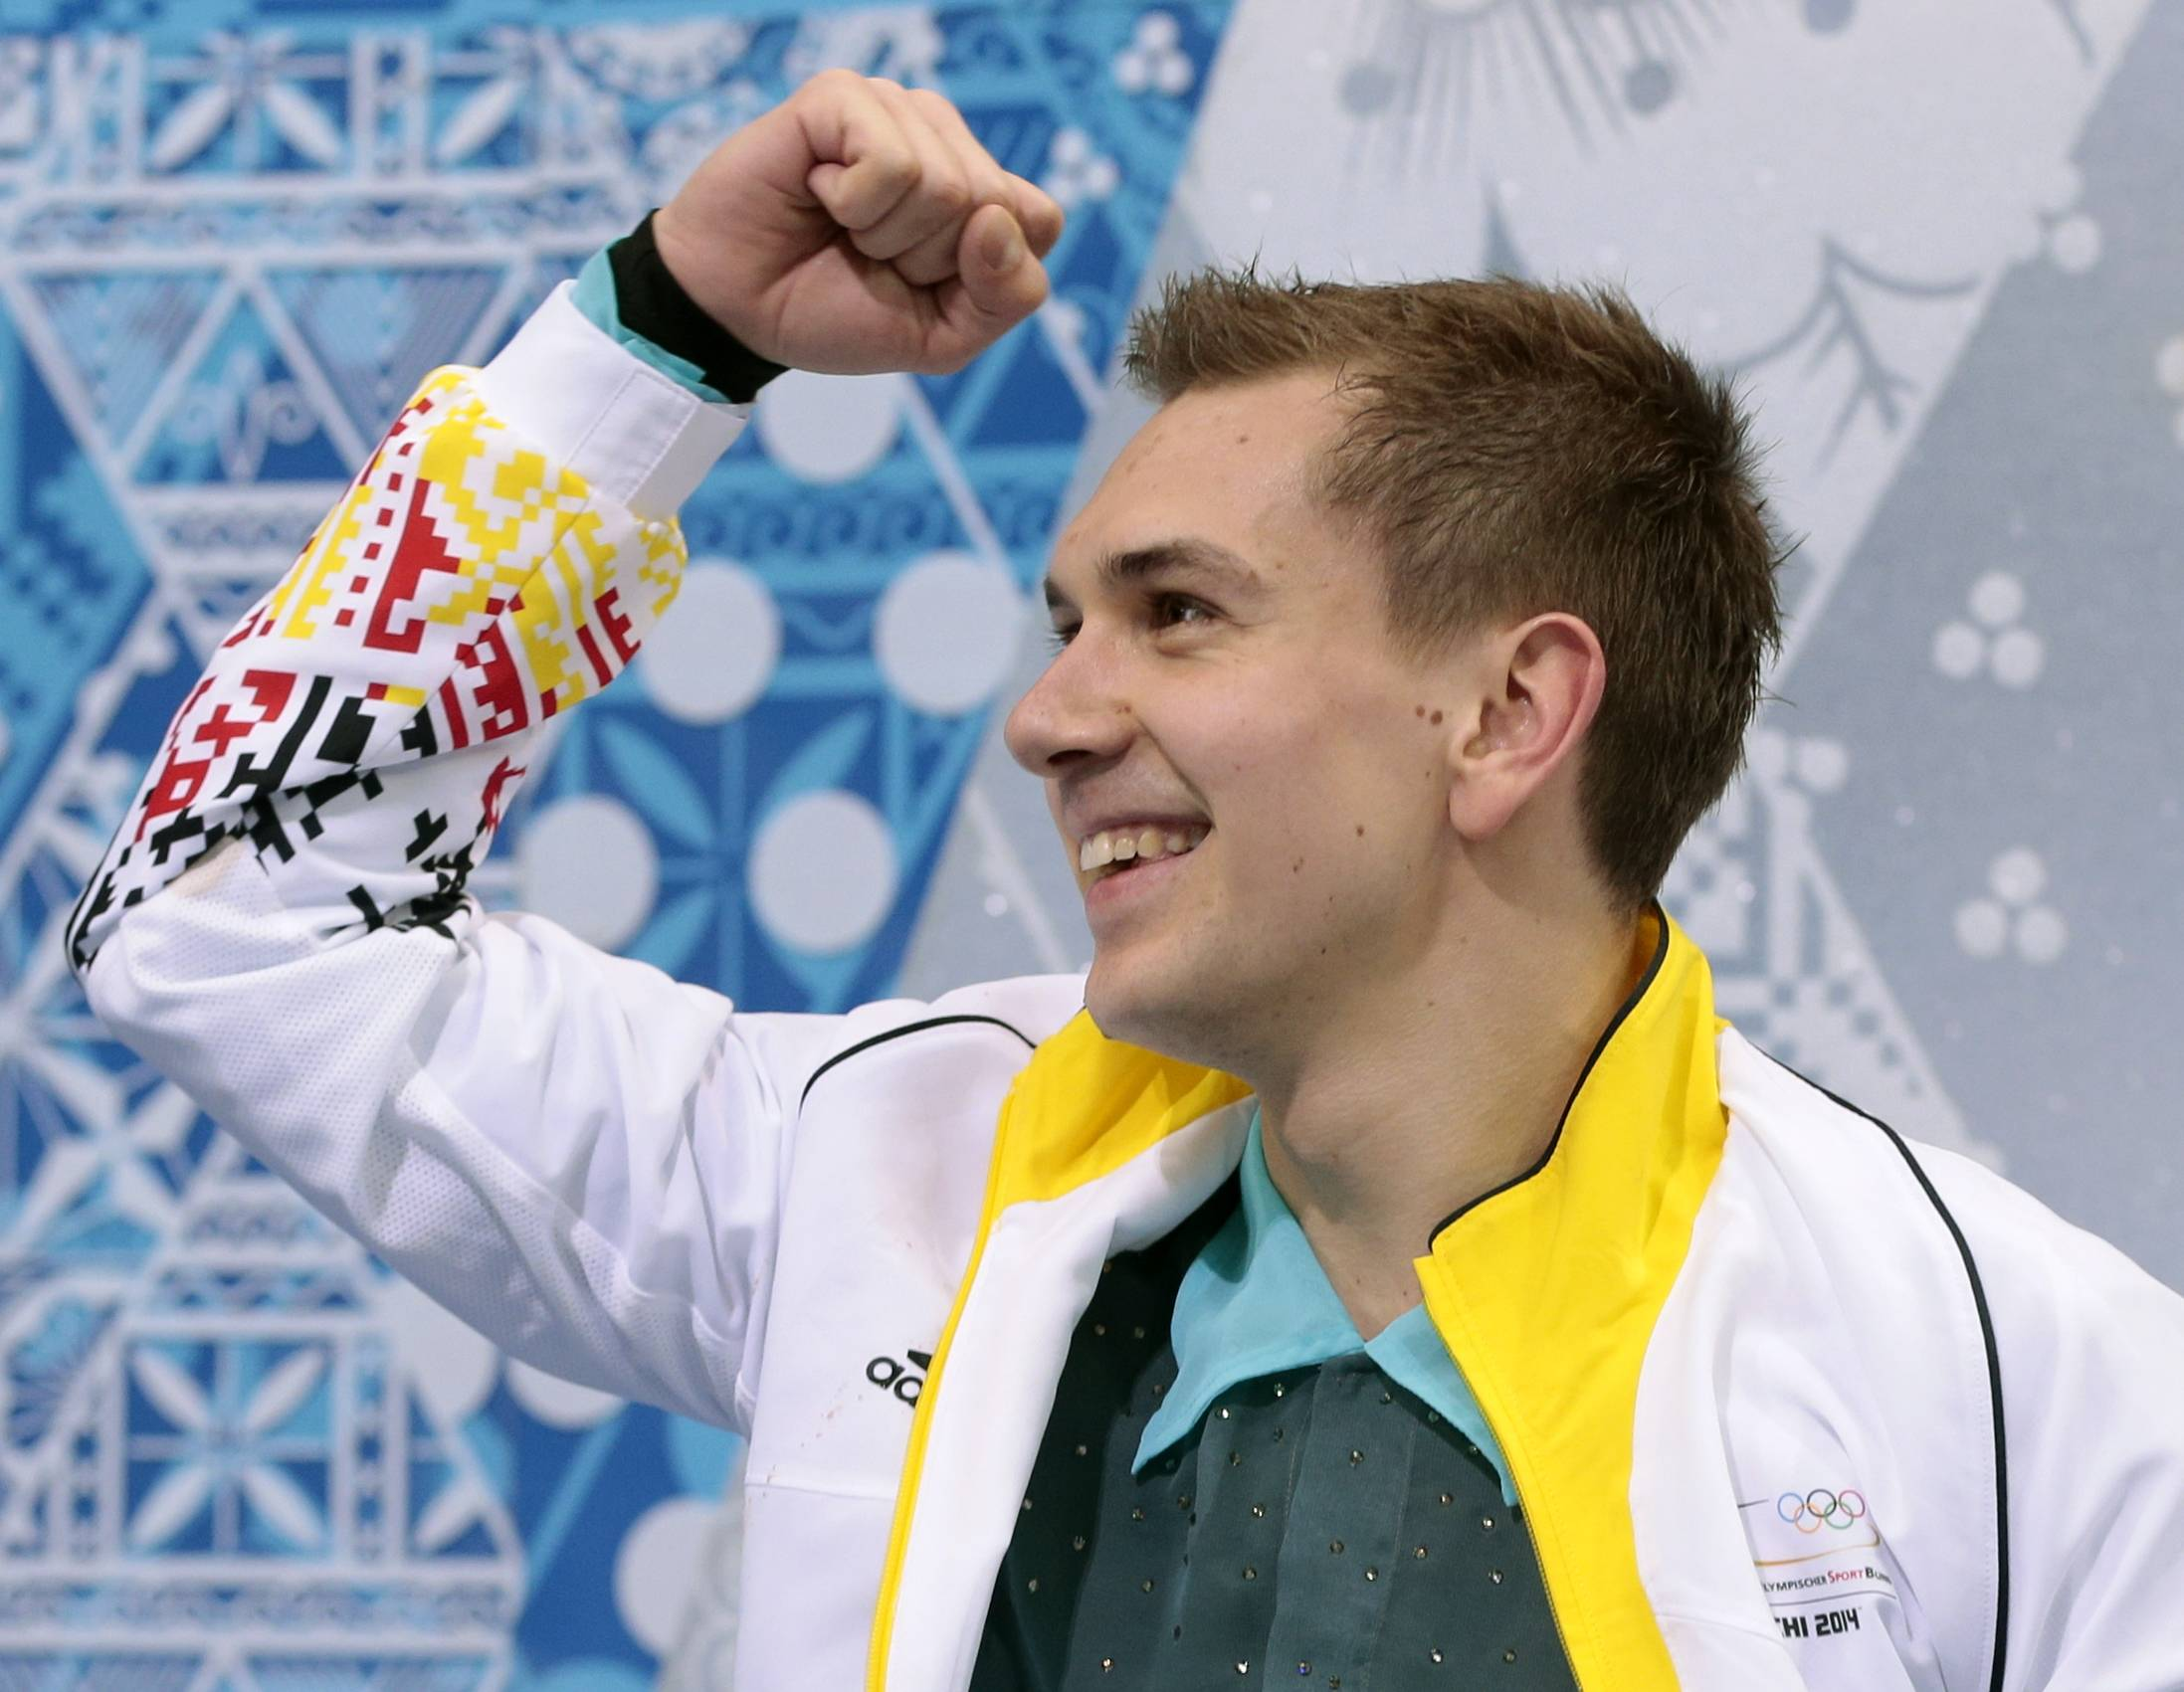 Peter Liebers of Germany gestures as he waits in the results area after the men's short program figure skating competition.